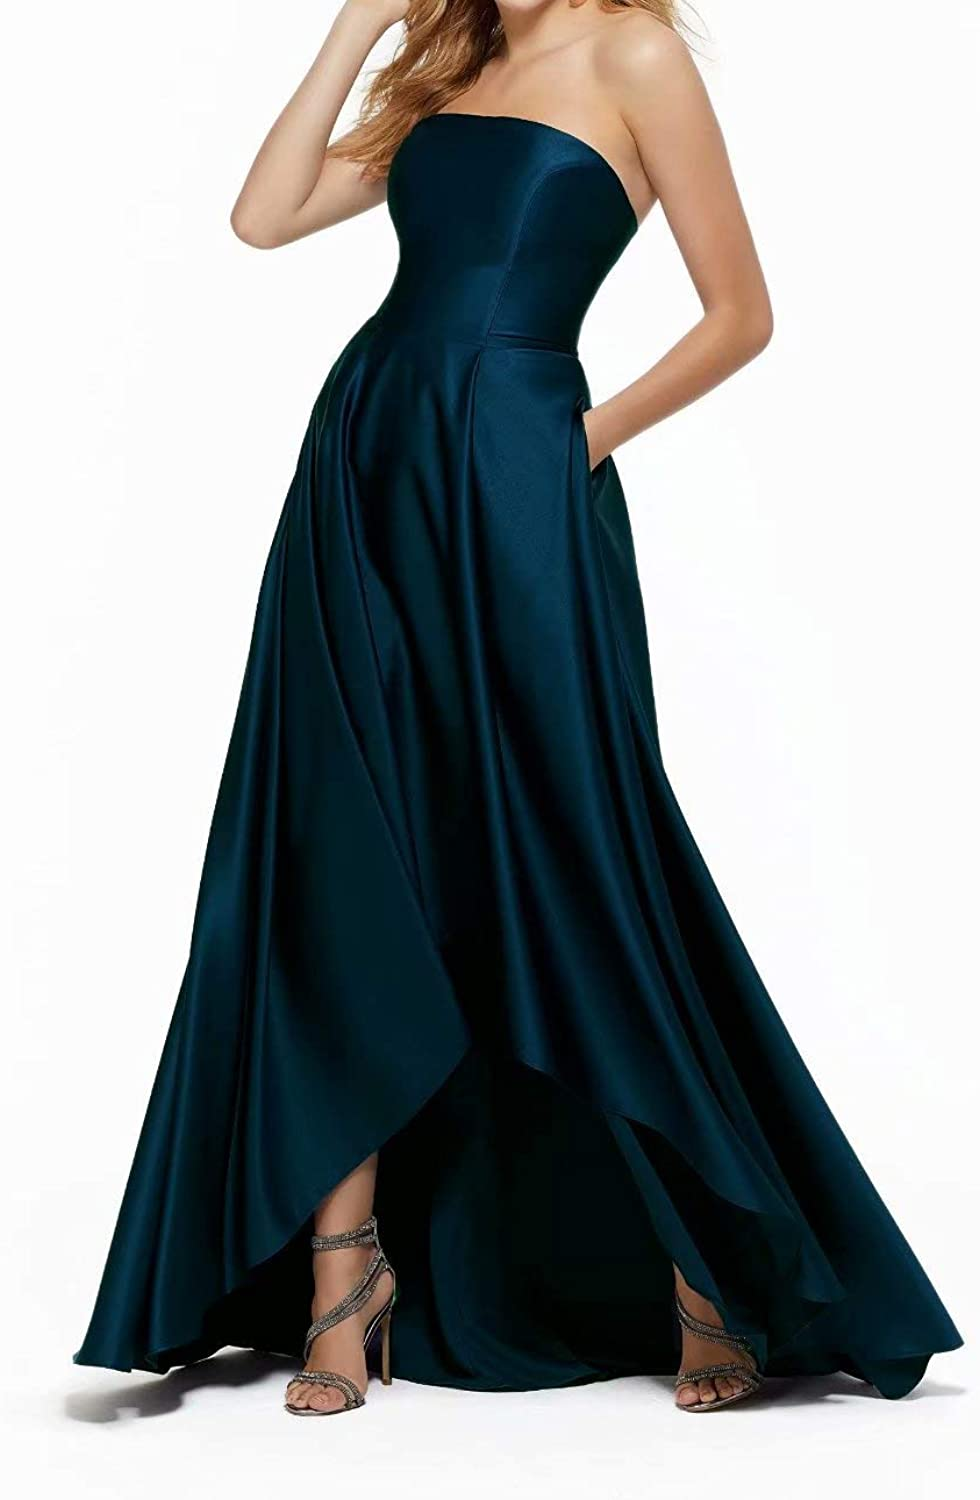 Women Strapless High Low Formal Prom Gowns Satin ALine Bridesmaid Dress with Pockets